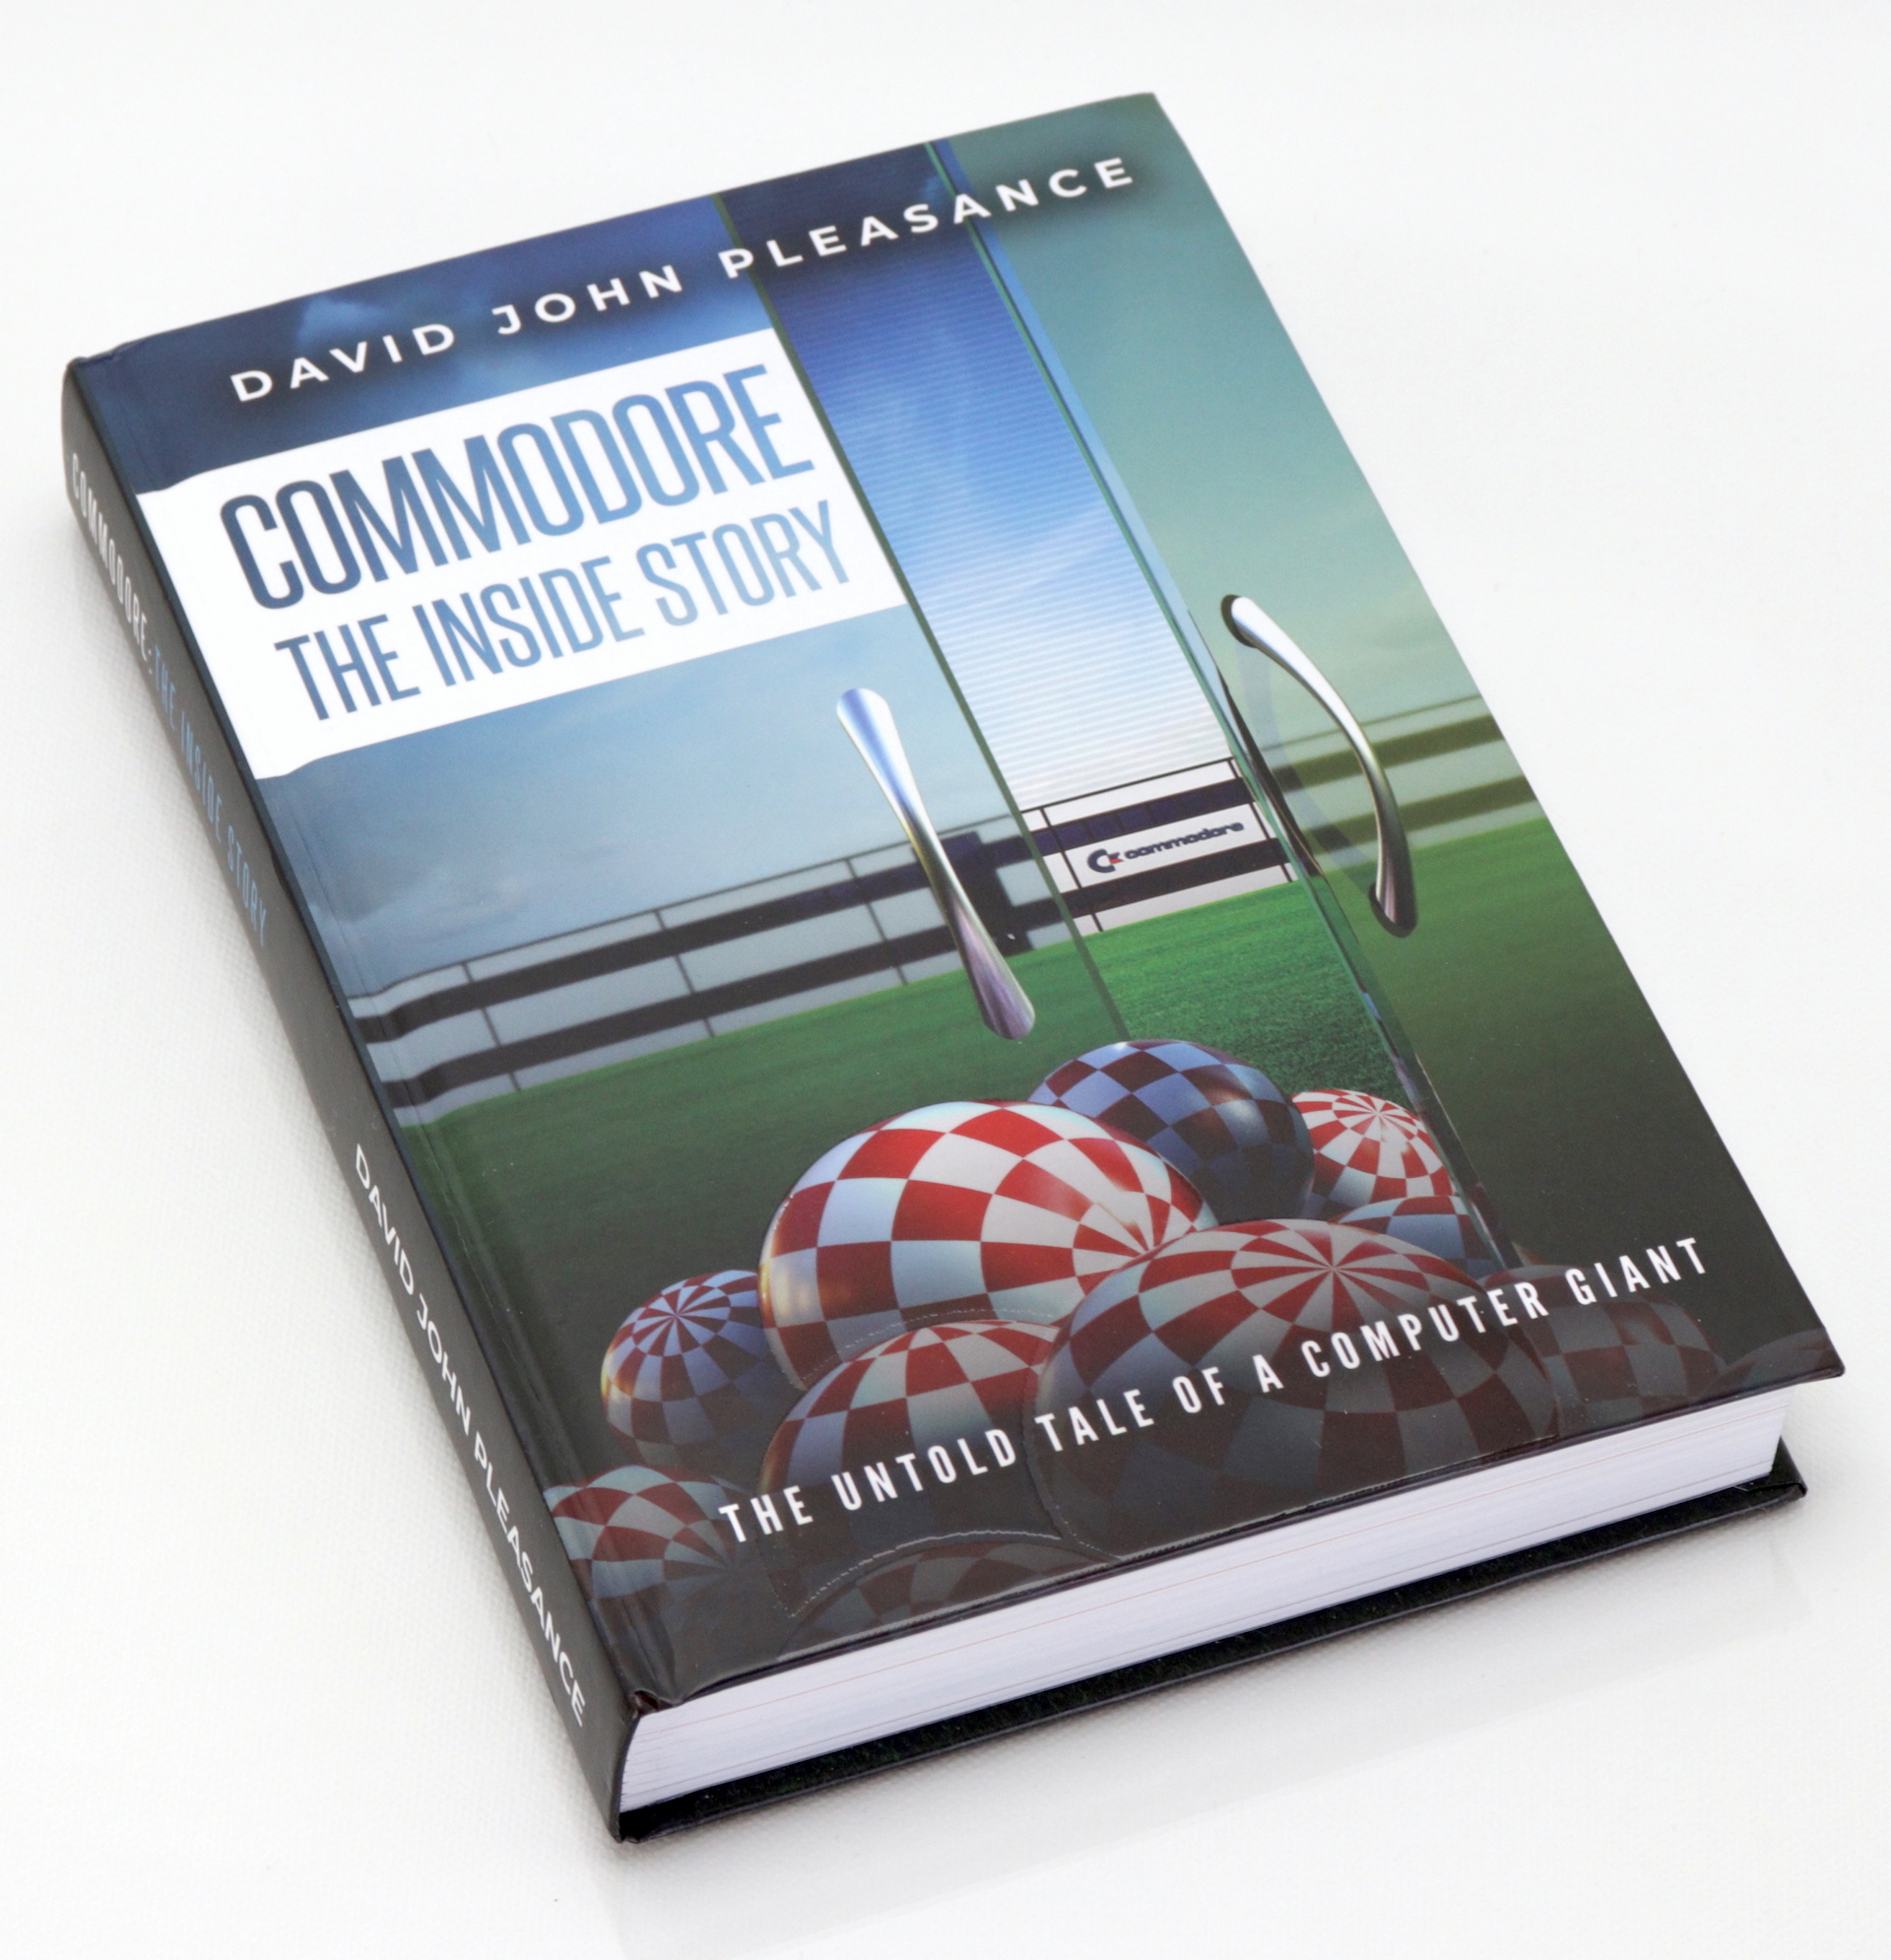 Commodore: The inside story